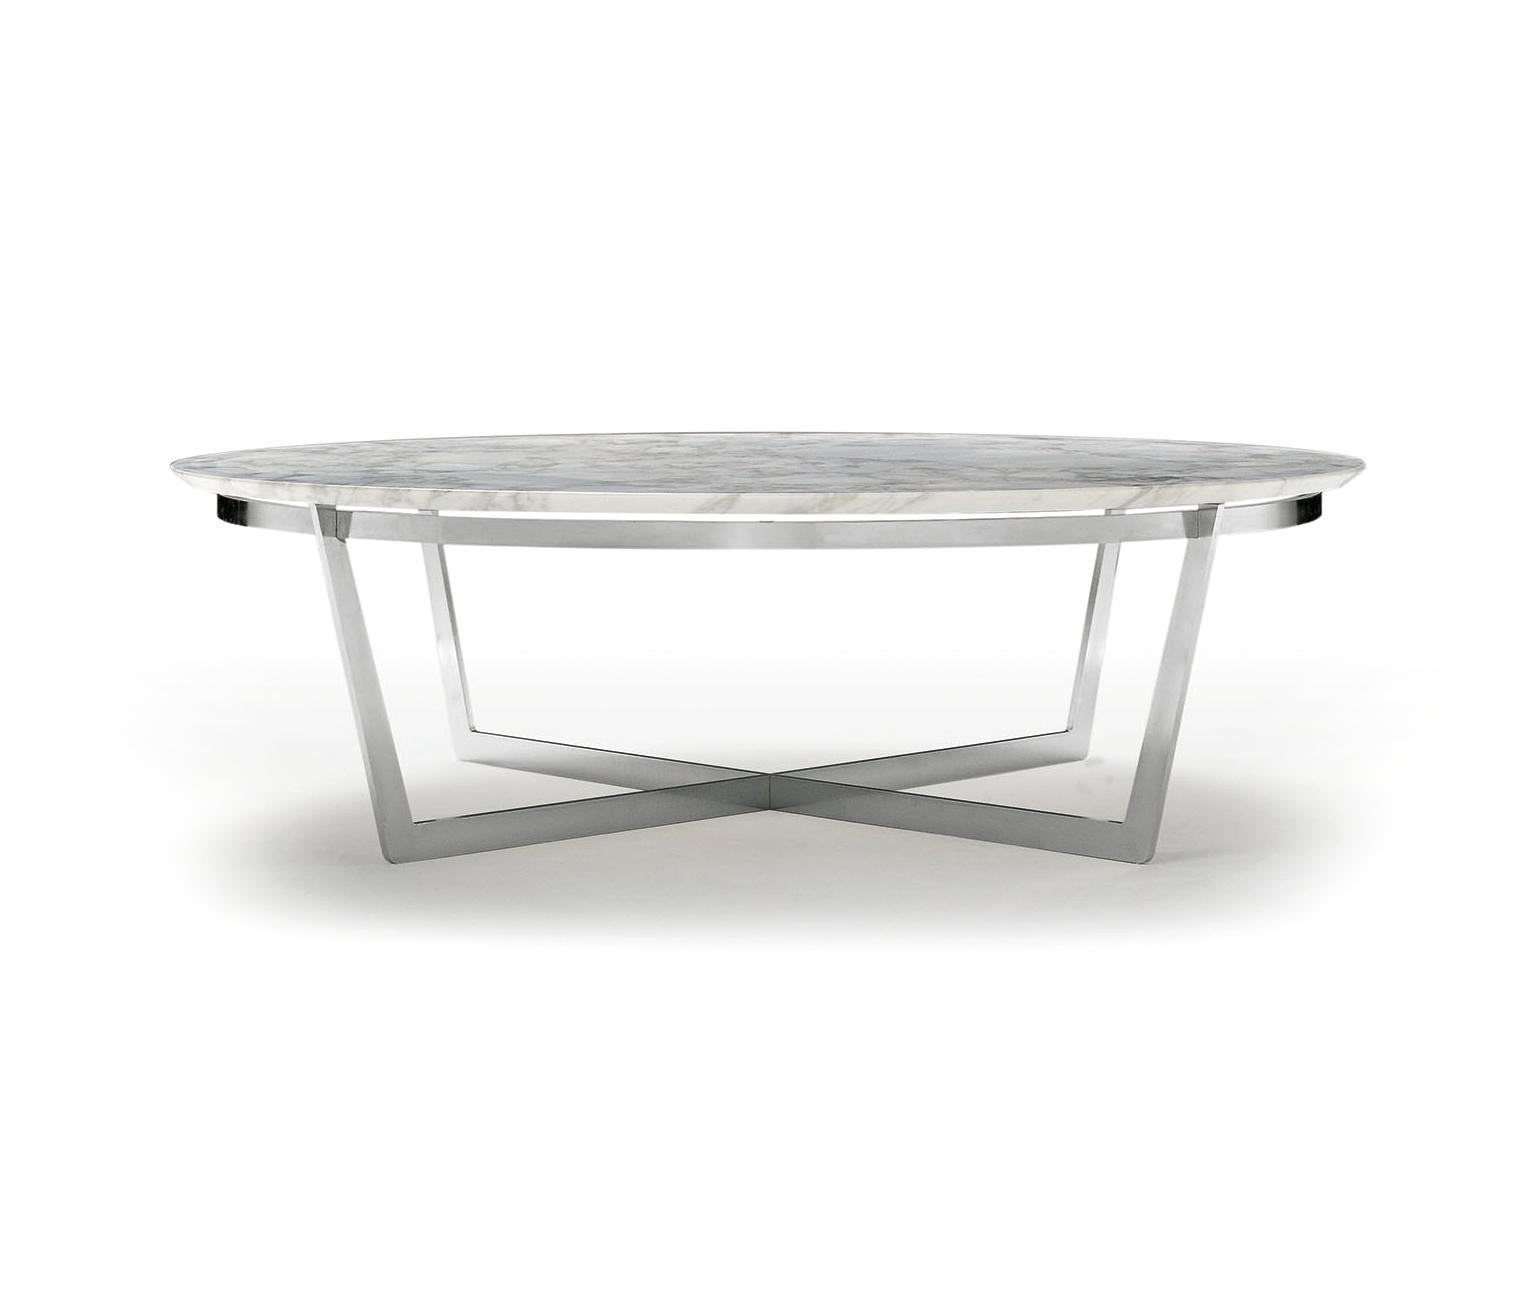 VITO Lounge tables from Flexform